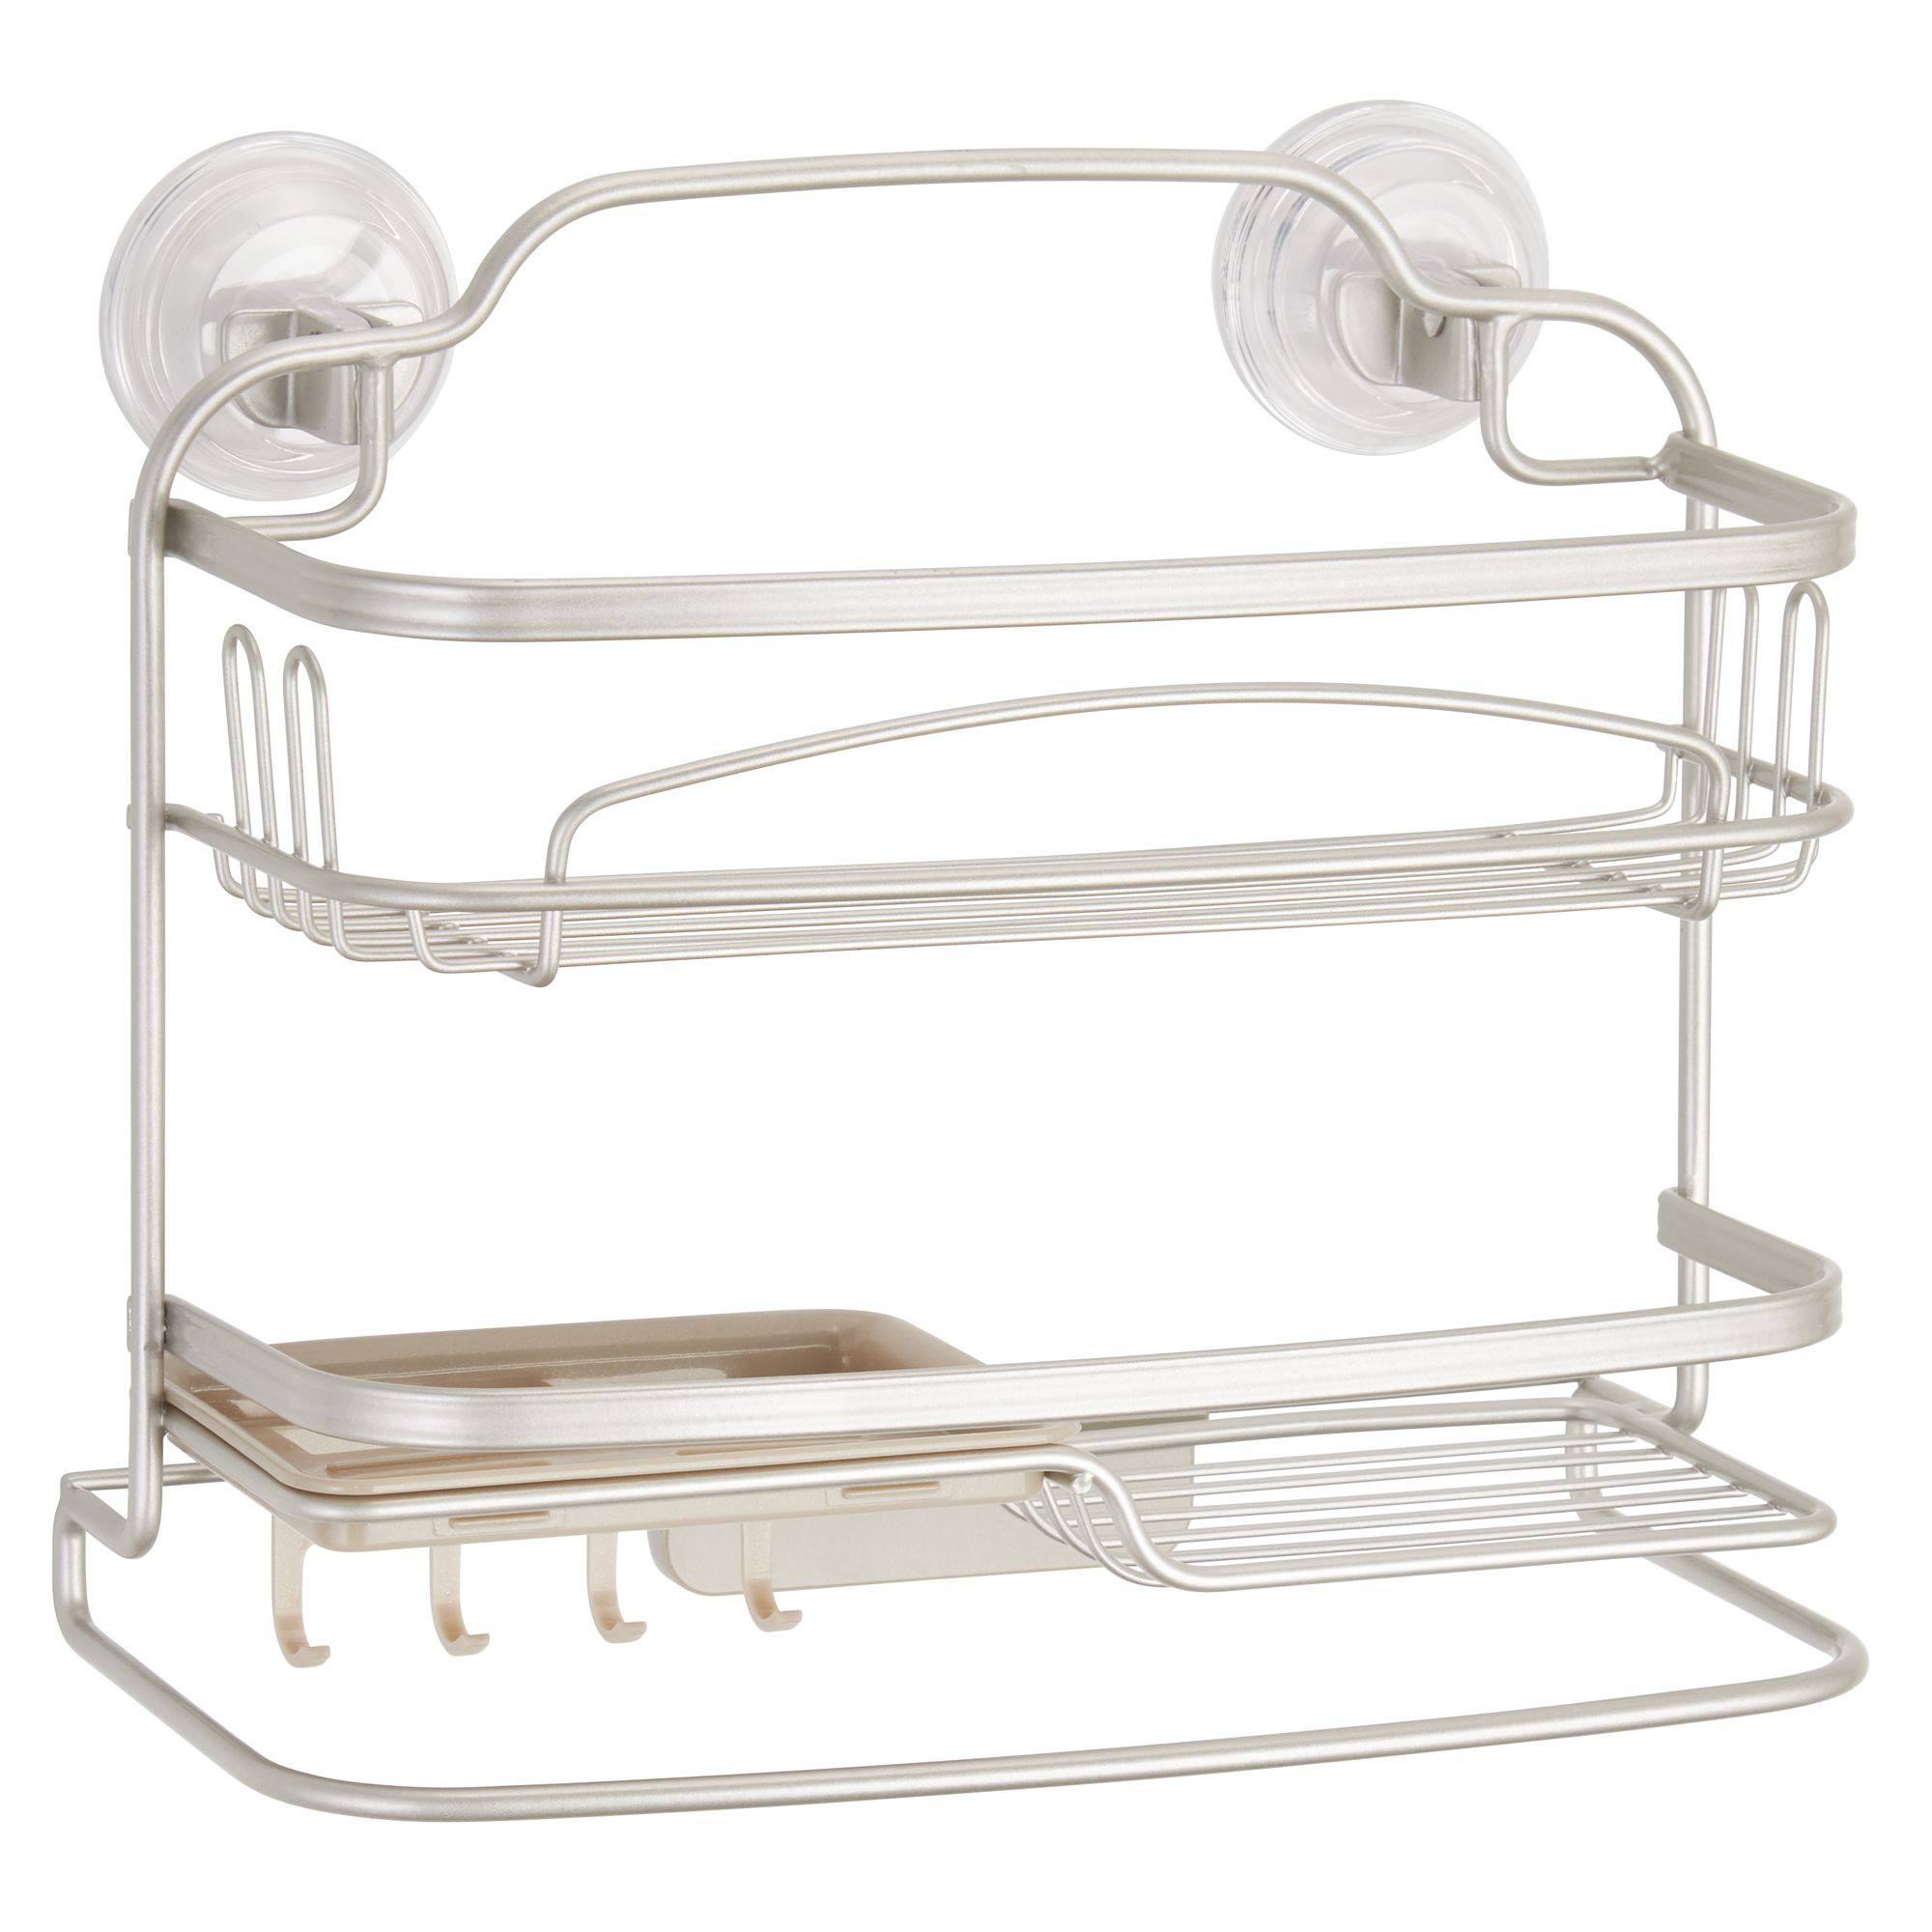 Better Homes & Gardens 2 Tier Suction Shelf, Matte Satin